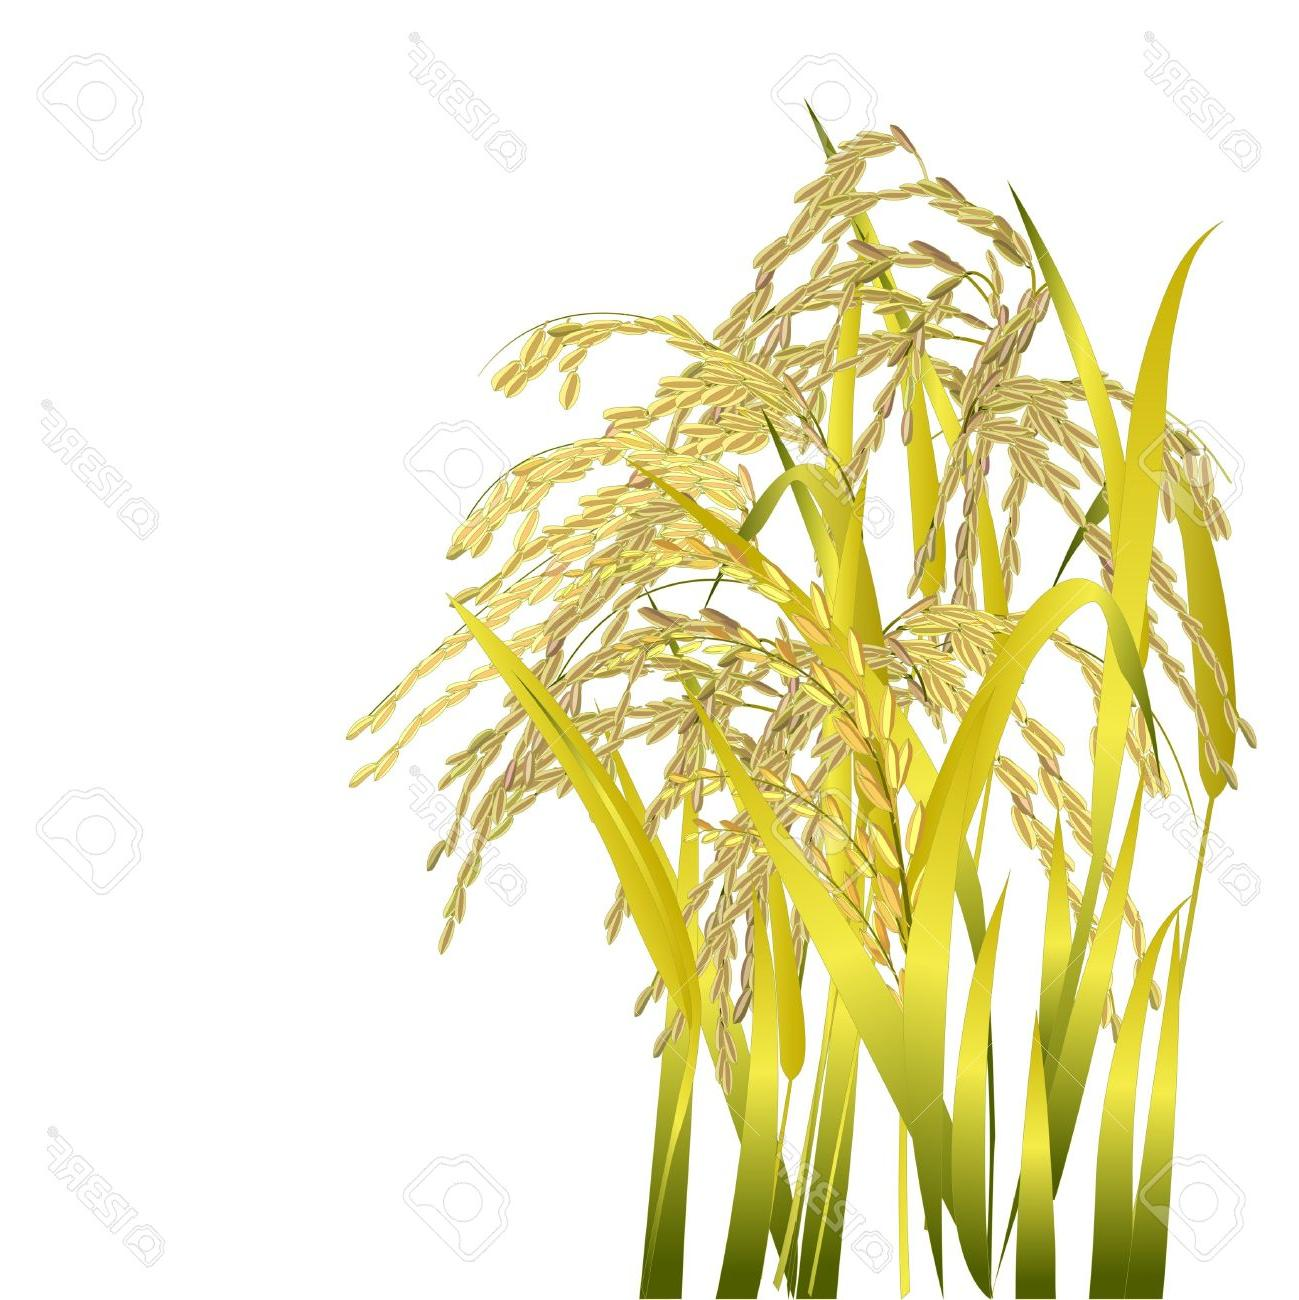 Top crop image vector. Cereal clipart rice plant